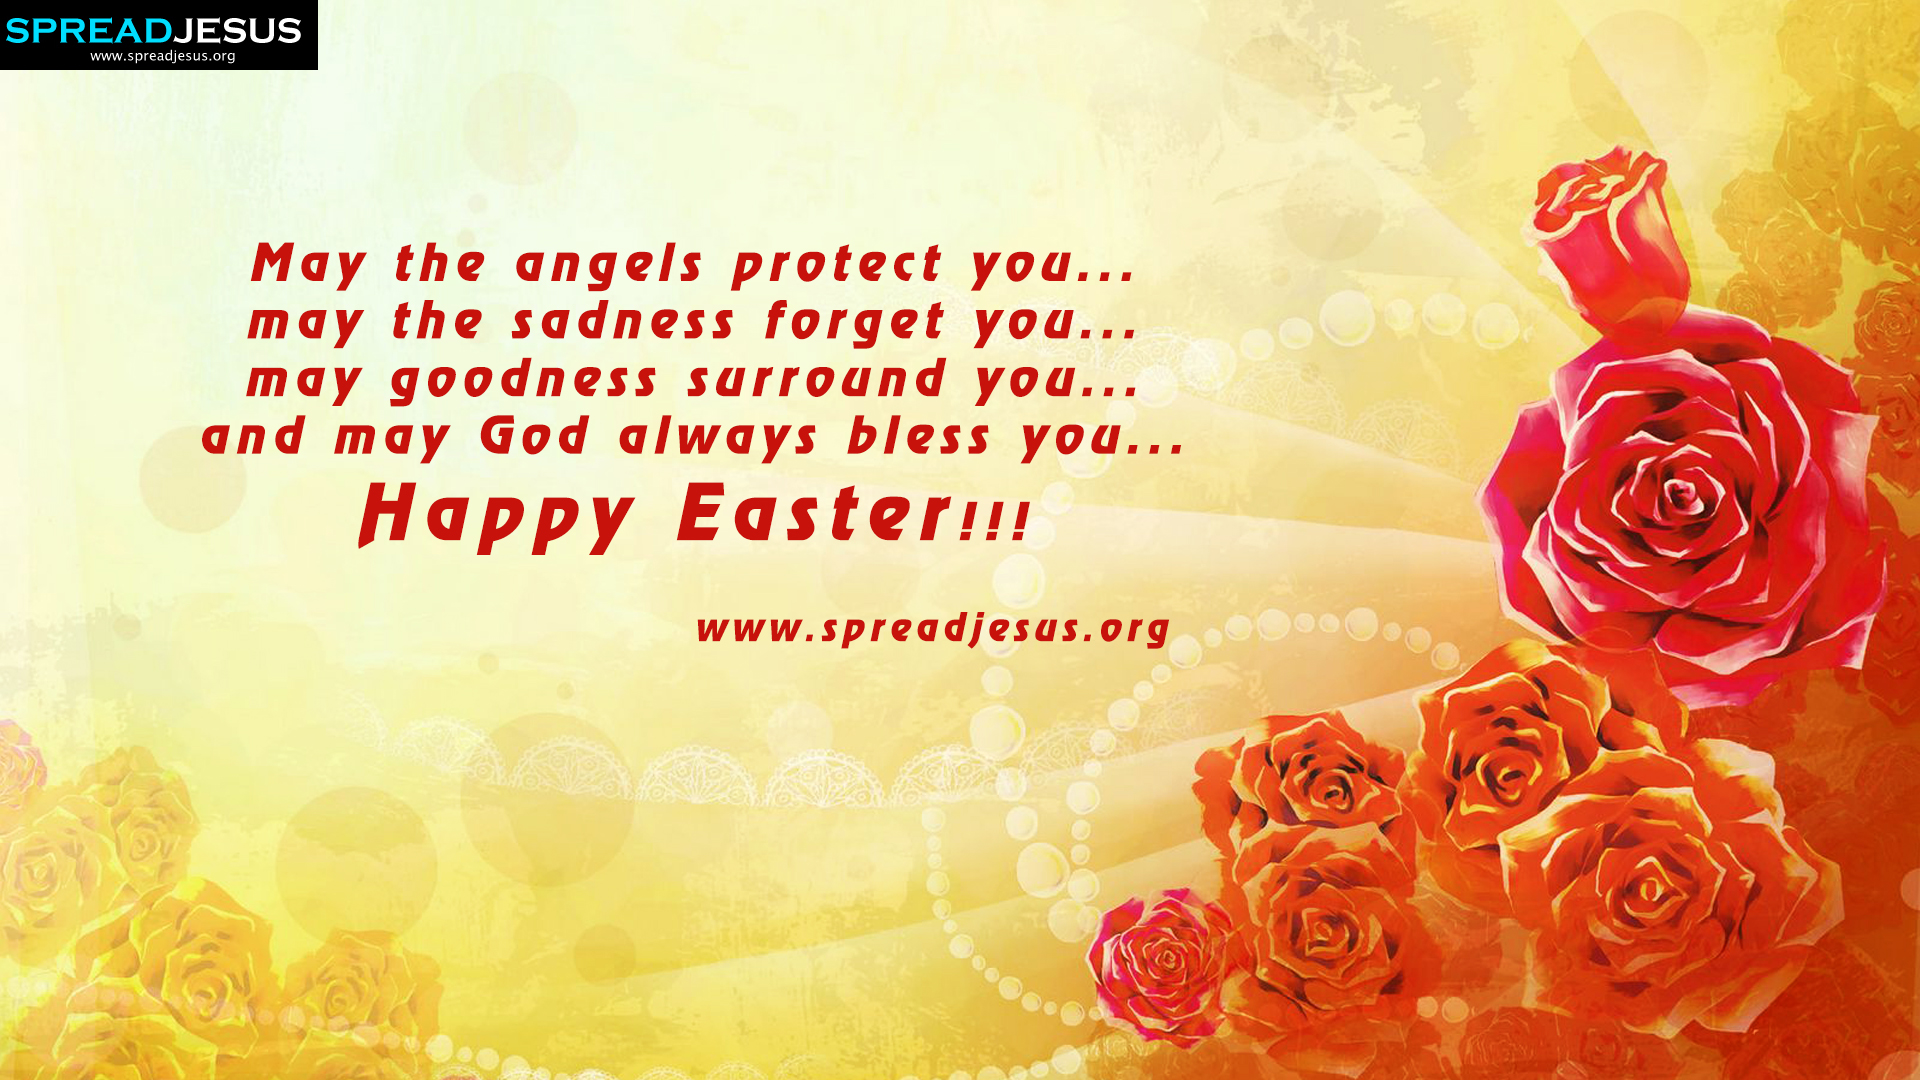 Happy Easter Easter Greetings Hd Wallpapers May The Angels Protect You